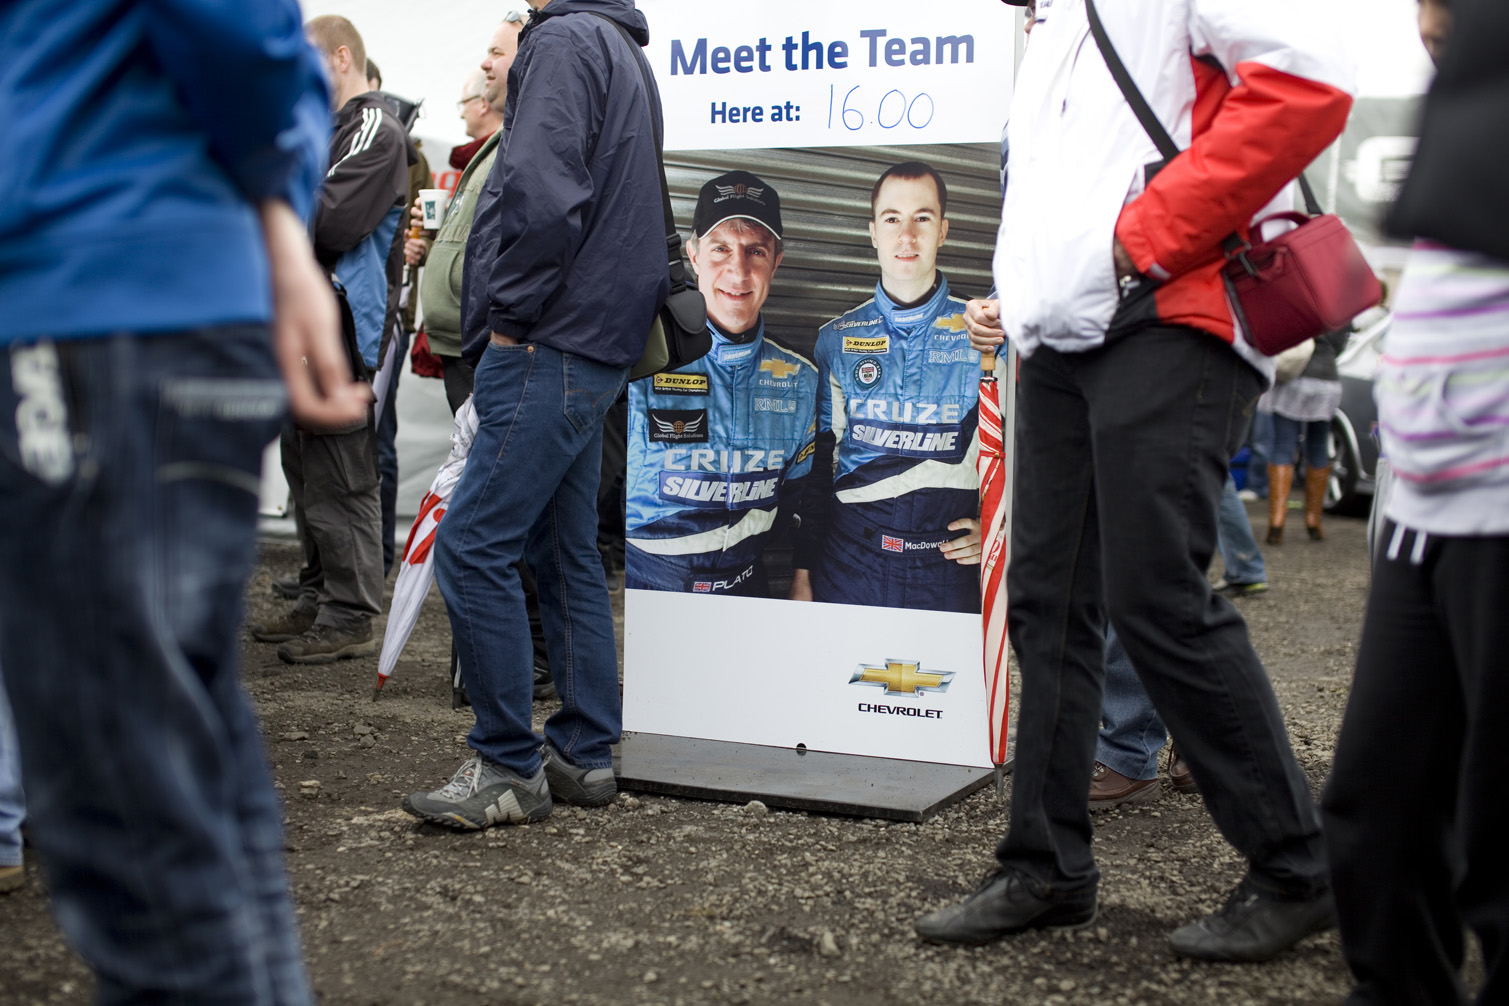 Poster for Q&A's with the fans at Croft.